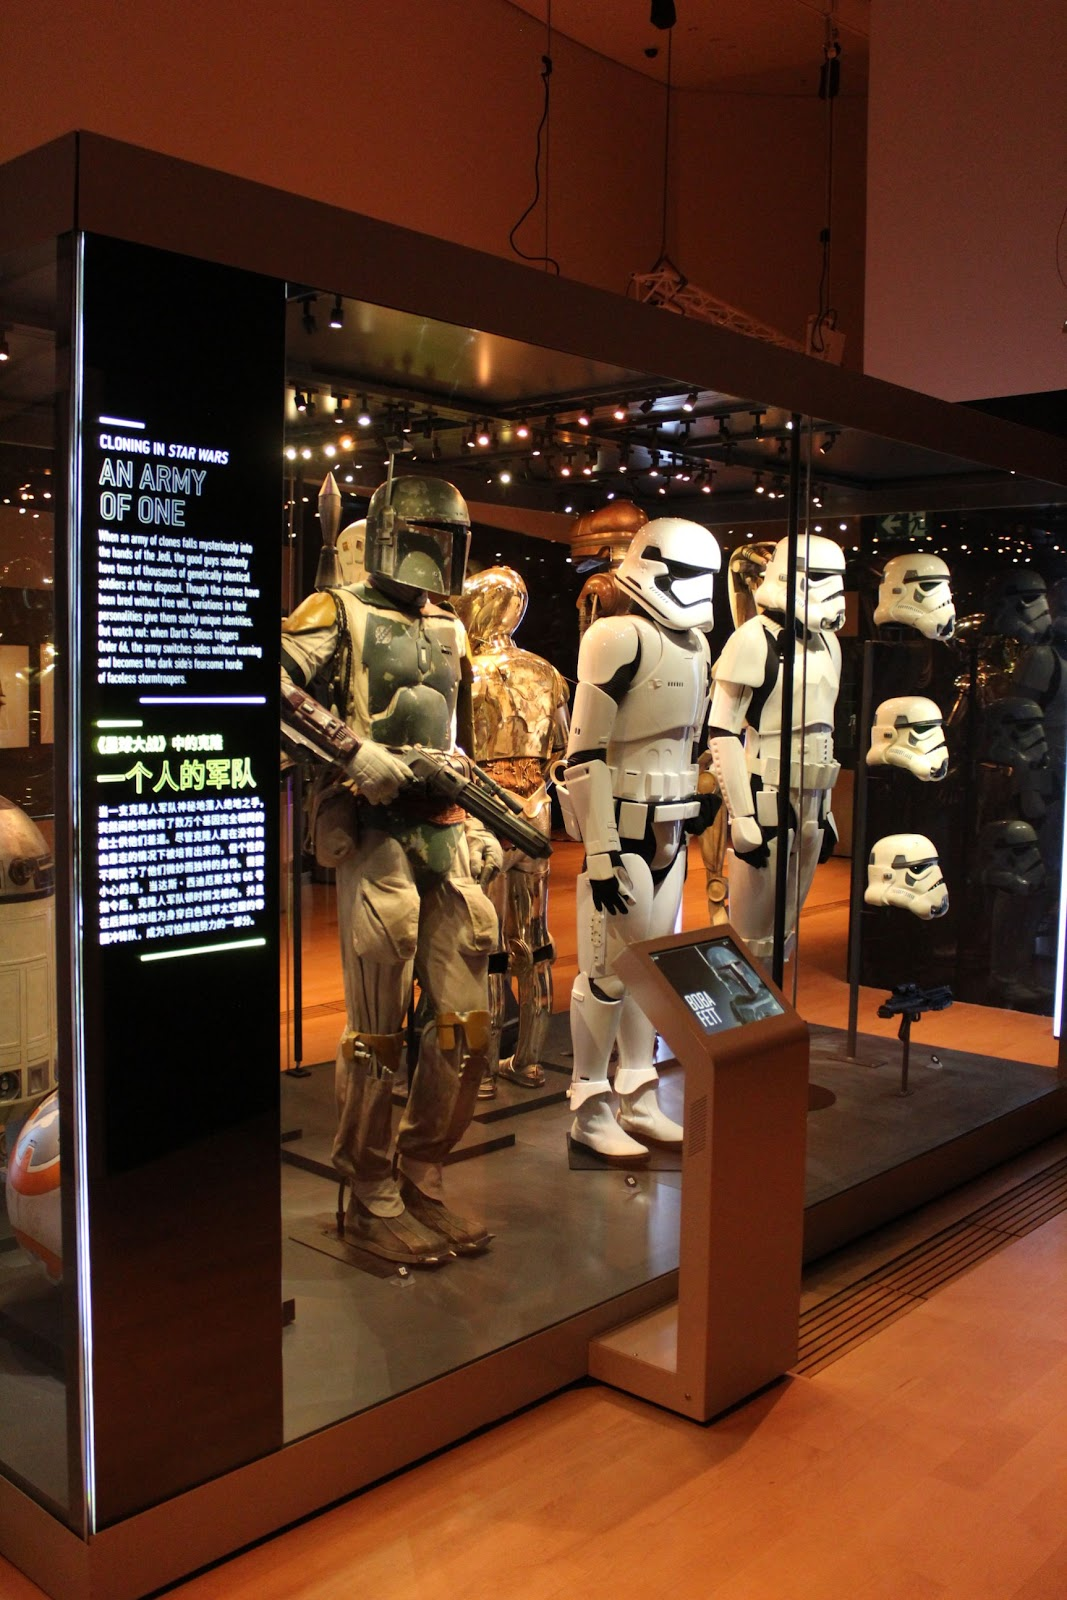 Boba Fett and Stormtrooper costumes on display